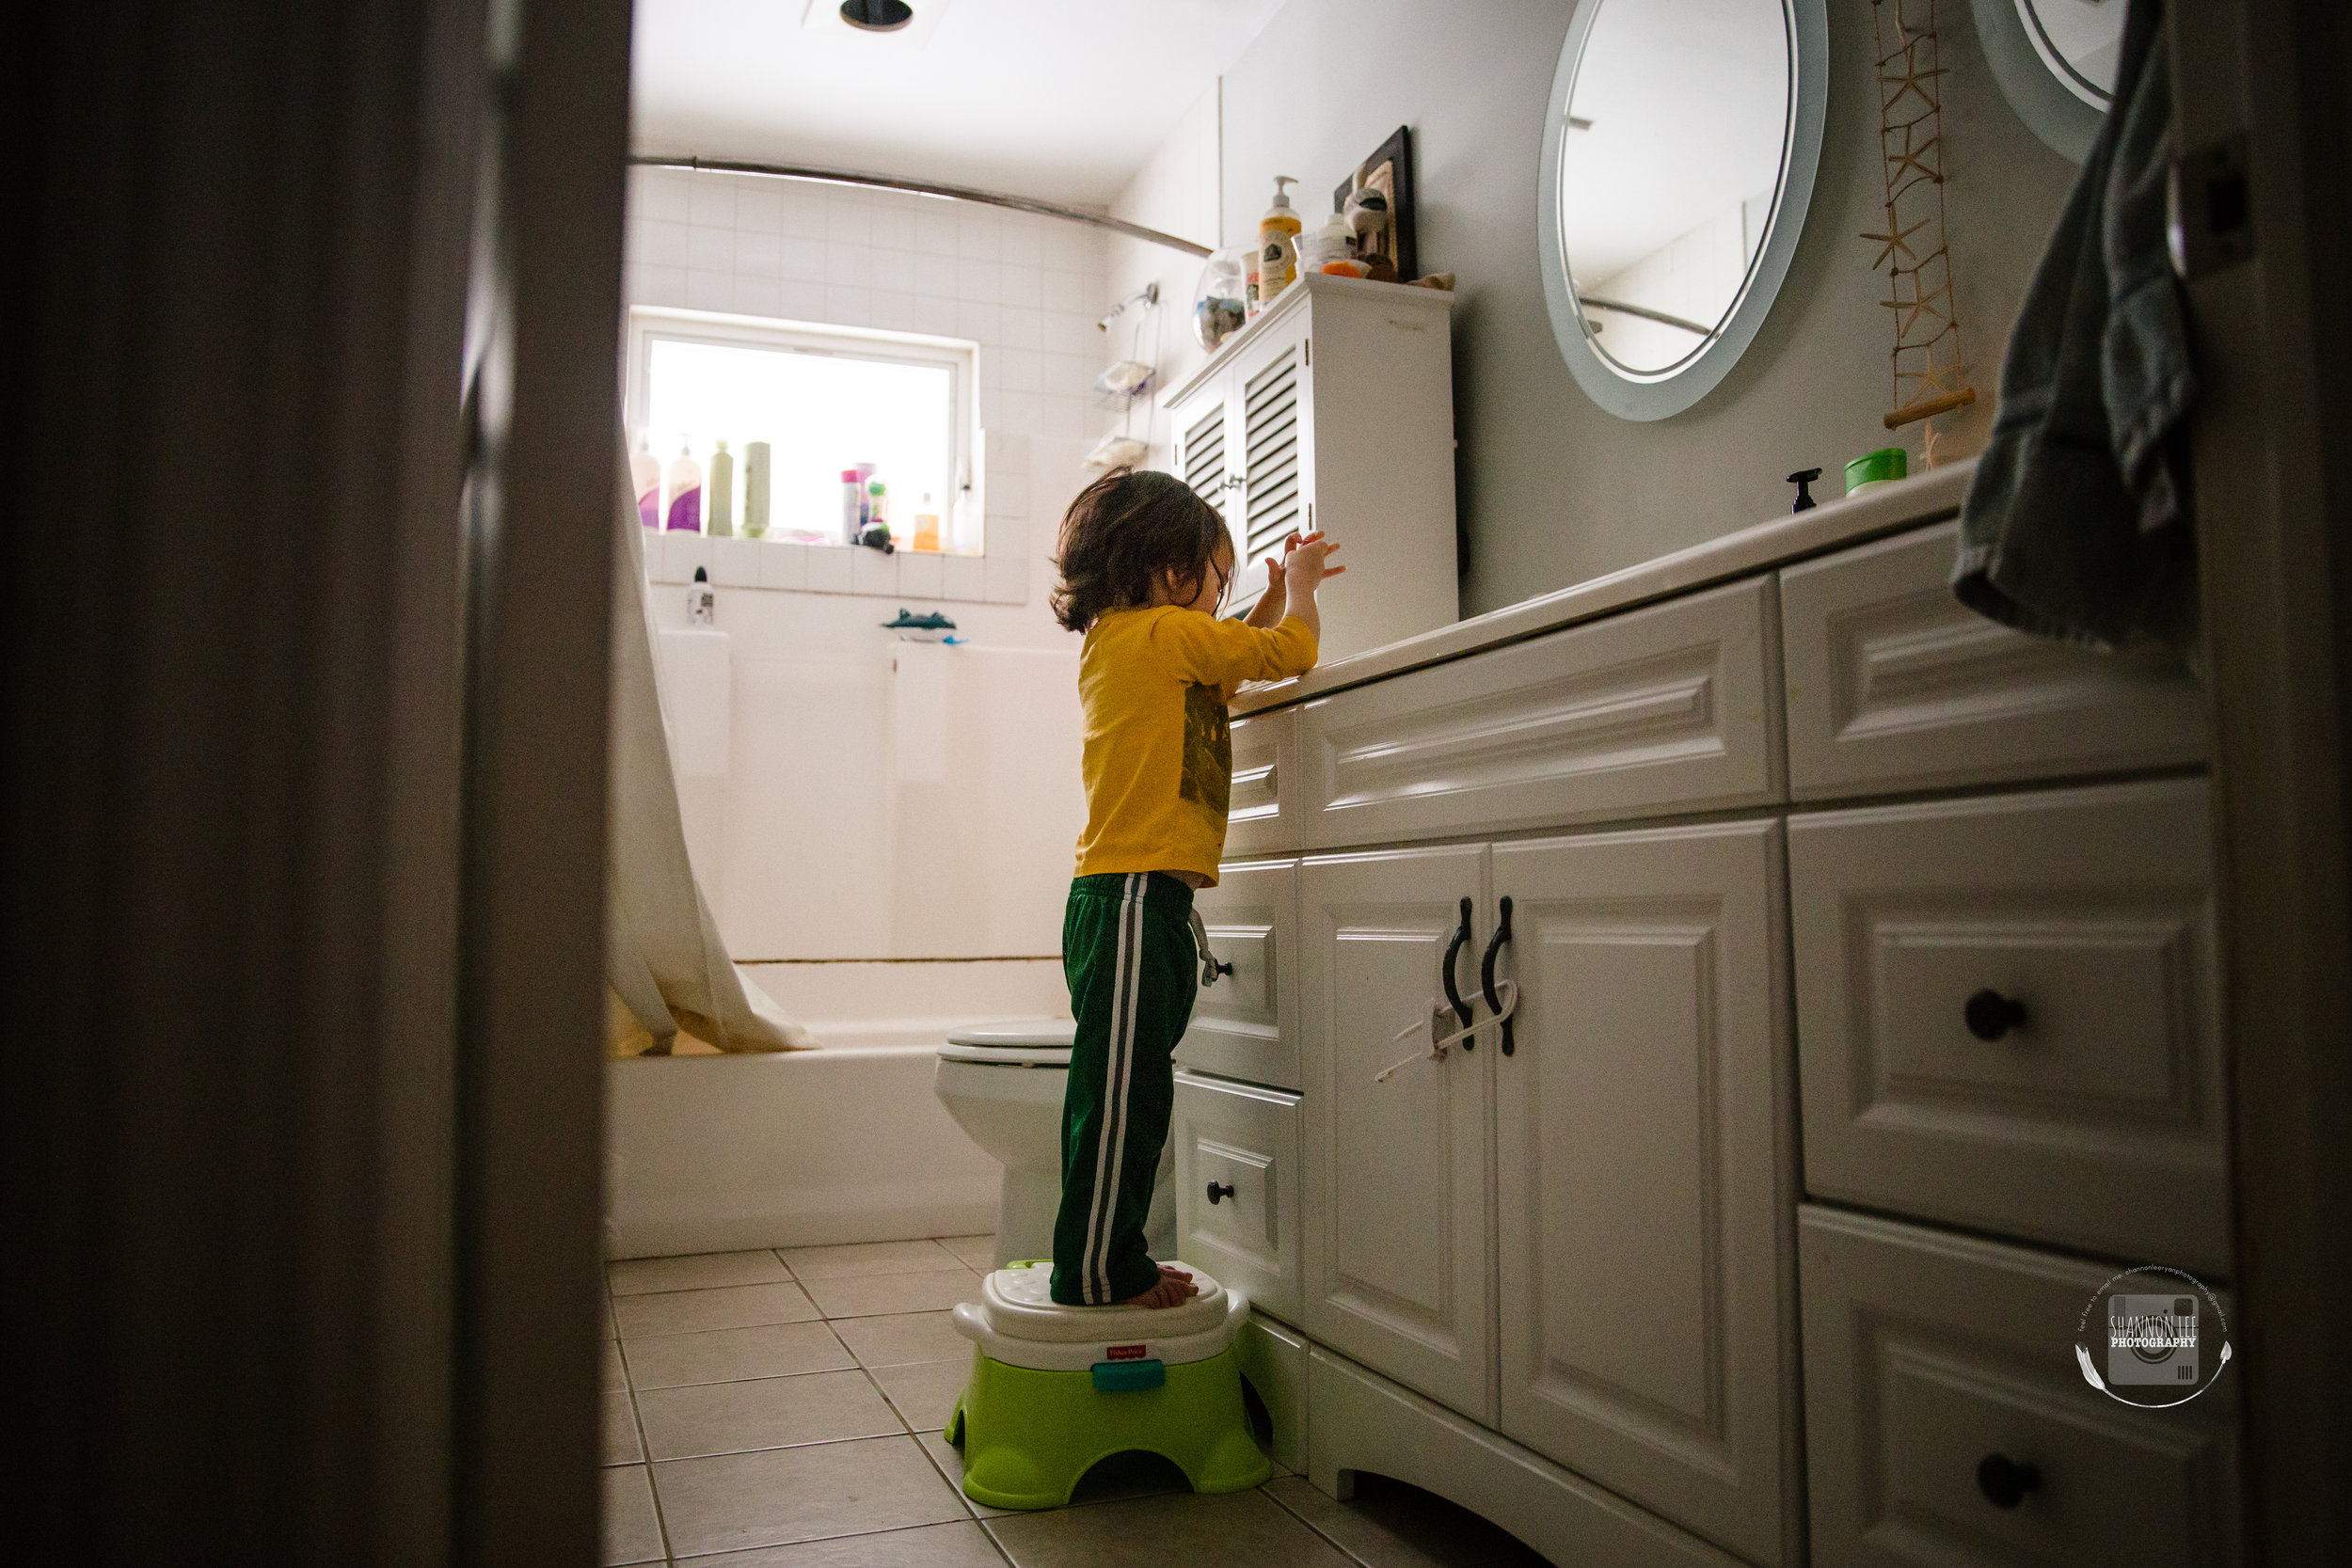 He loves being independent. Washing his hands after he brushed his teeth. Soon he won't need to stand on a step stool, that makes me a little sad.